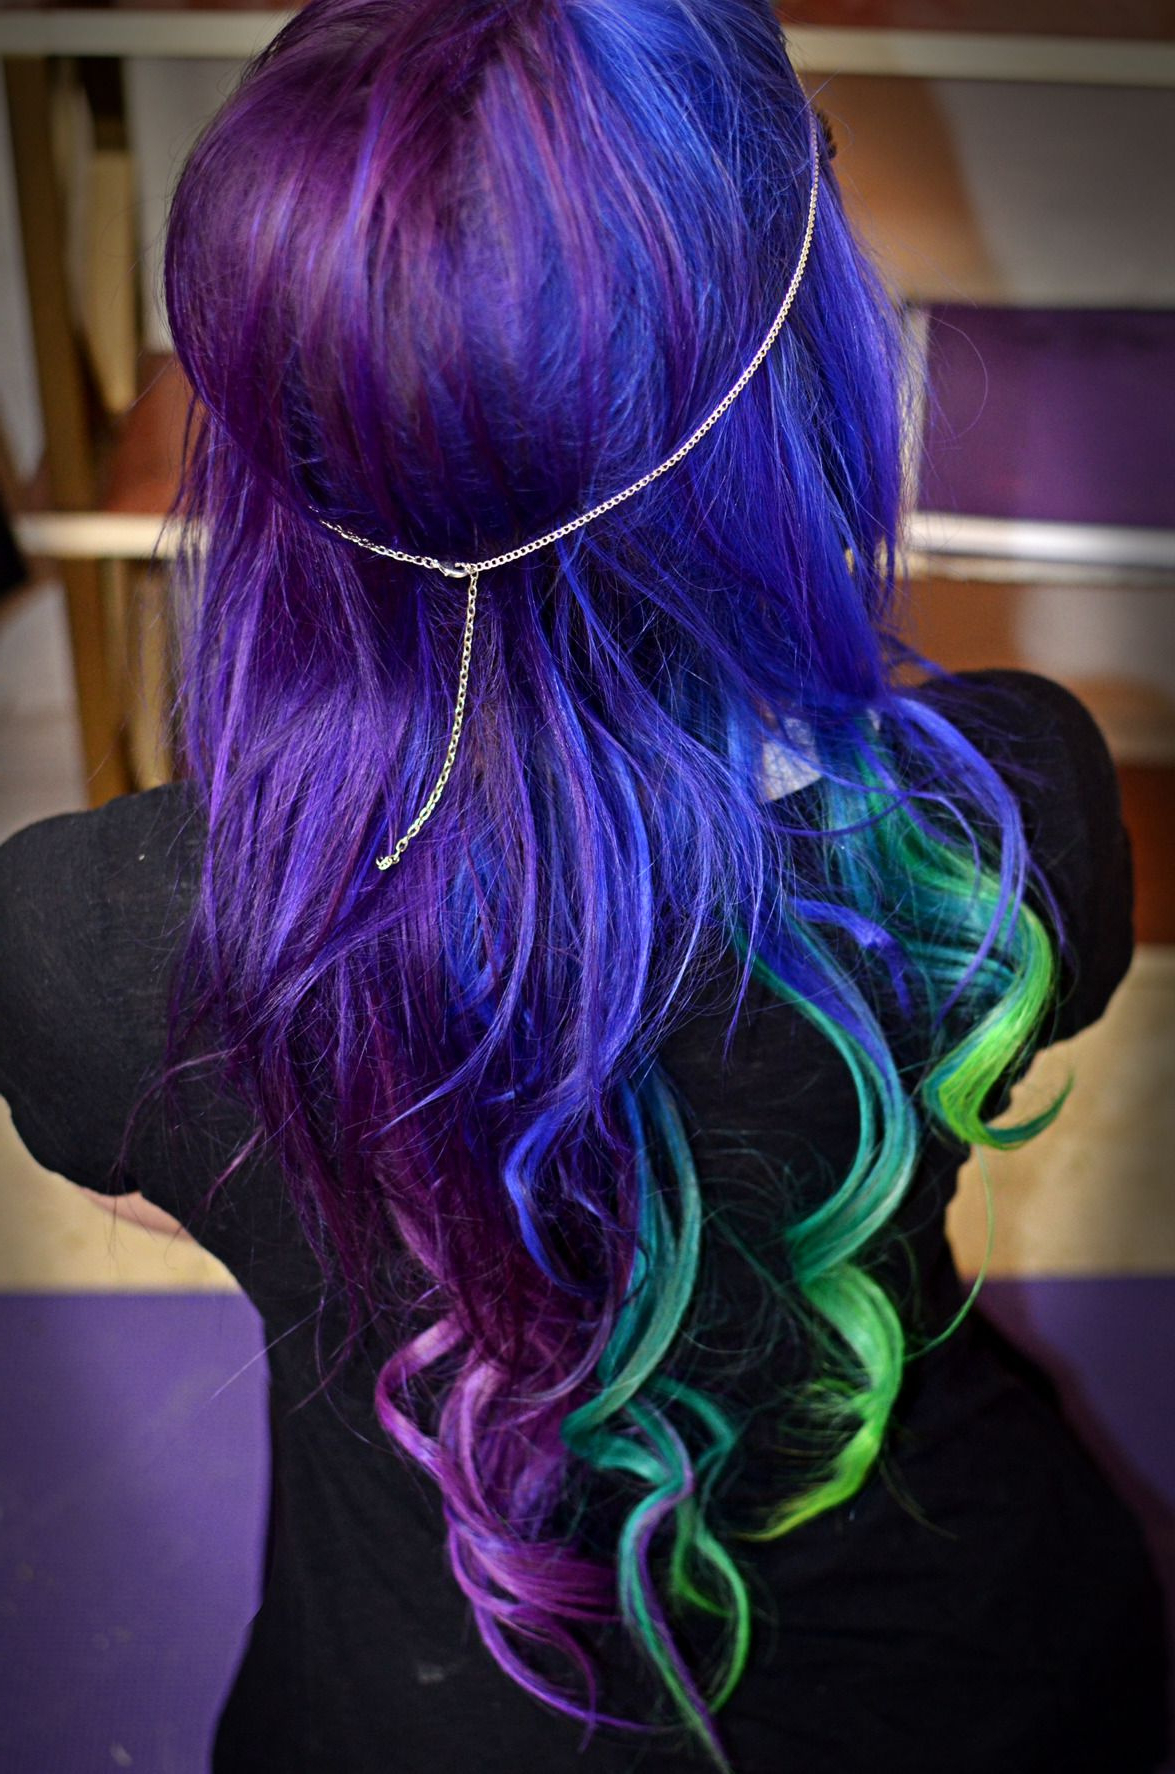 Most Up To Date Ravishing Smoky Purple Ombre Hairstyles Inside Hairstyles : Blue Ombre Hair Bob Ravishing Galaxy Hair Too (View 8 of 20)